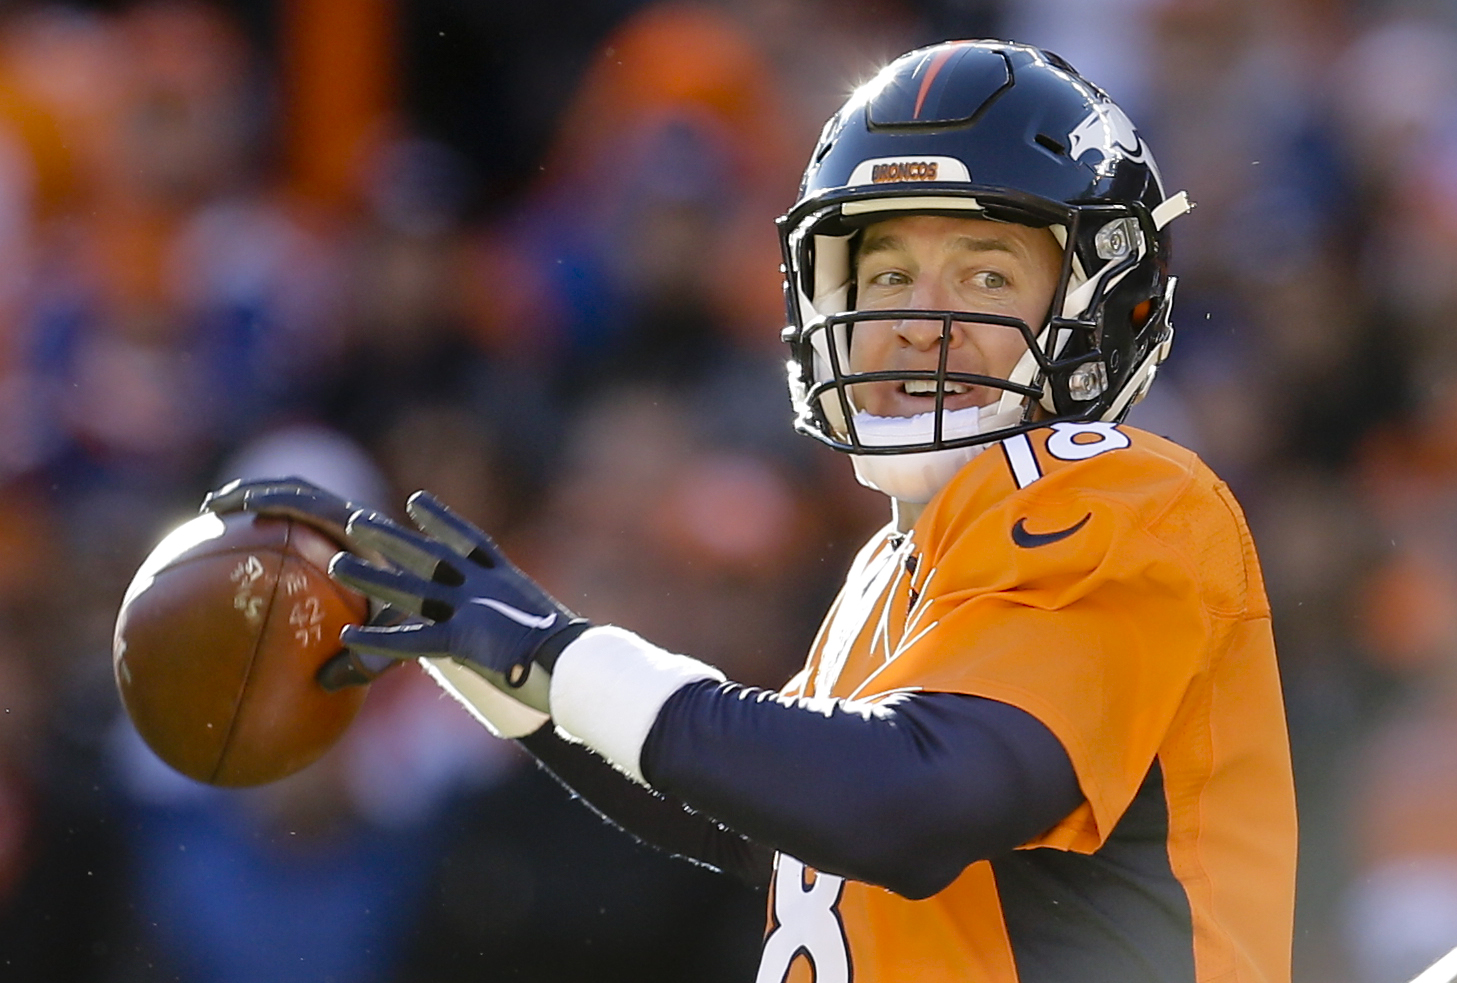 Denver Broncos quarterback Peyton Manning passes against the Pittsburgh Steelers during the first half in an NFL football divisional playoff game, Sunday, Jan. 17, 2016, in Denver. (AP Photo/Joe Mahoney)